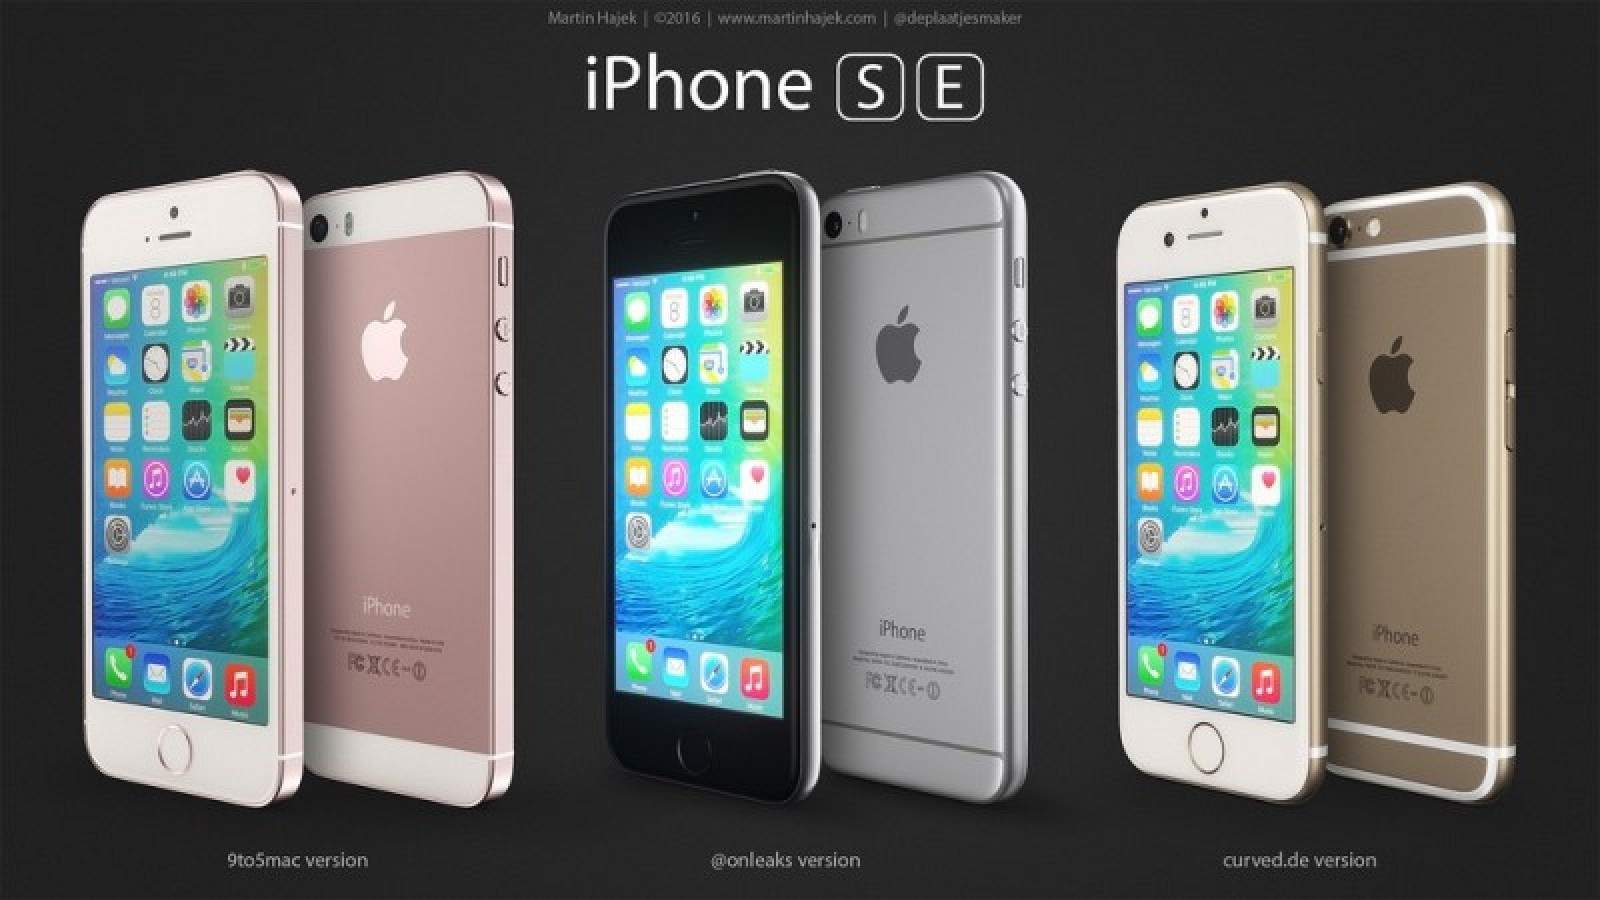 Iphone Se Iphone Se Everything We Know About Apple 39s 4 Inch Iphone